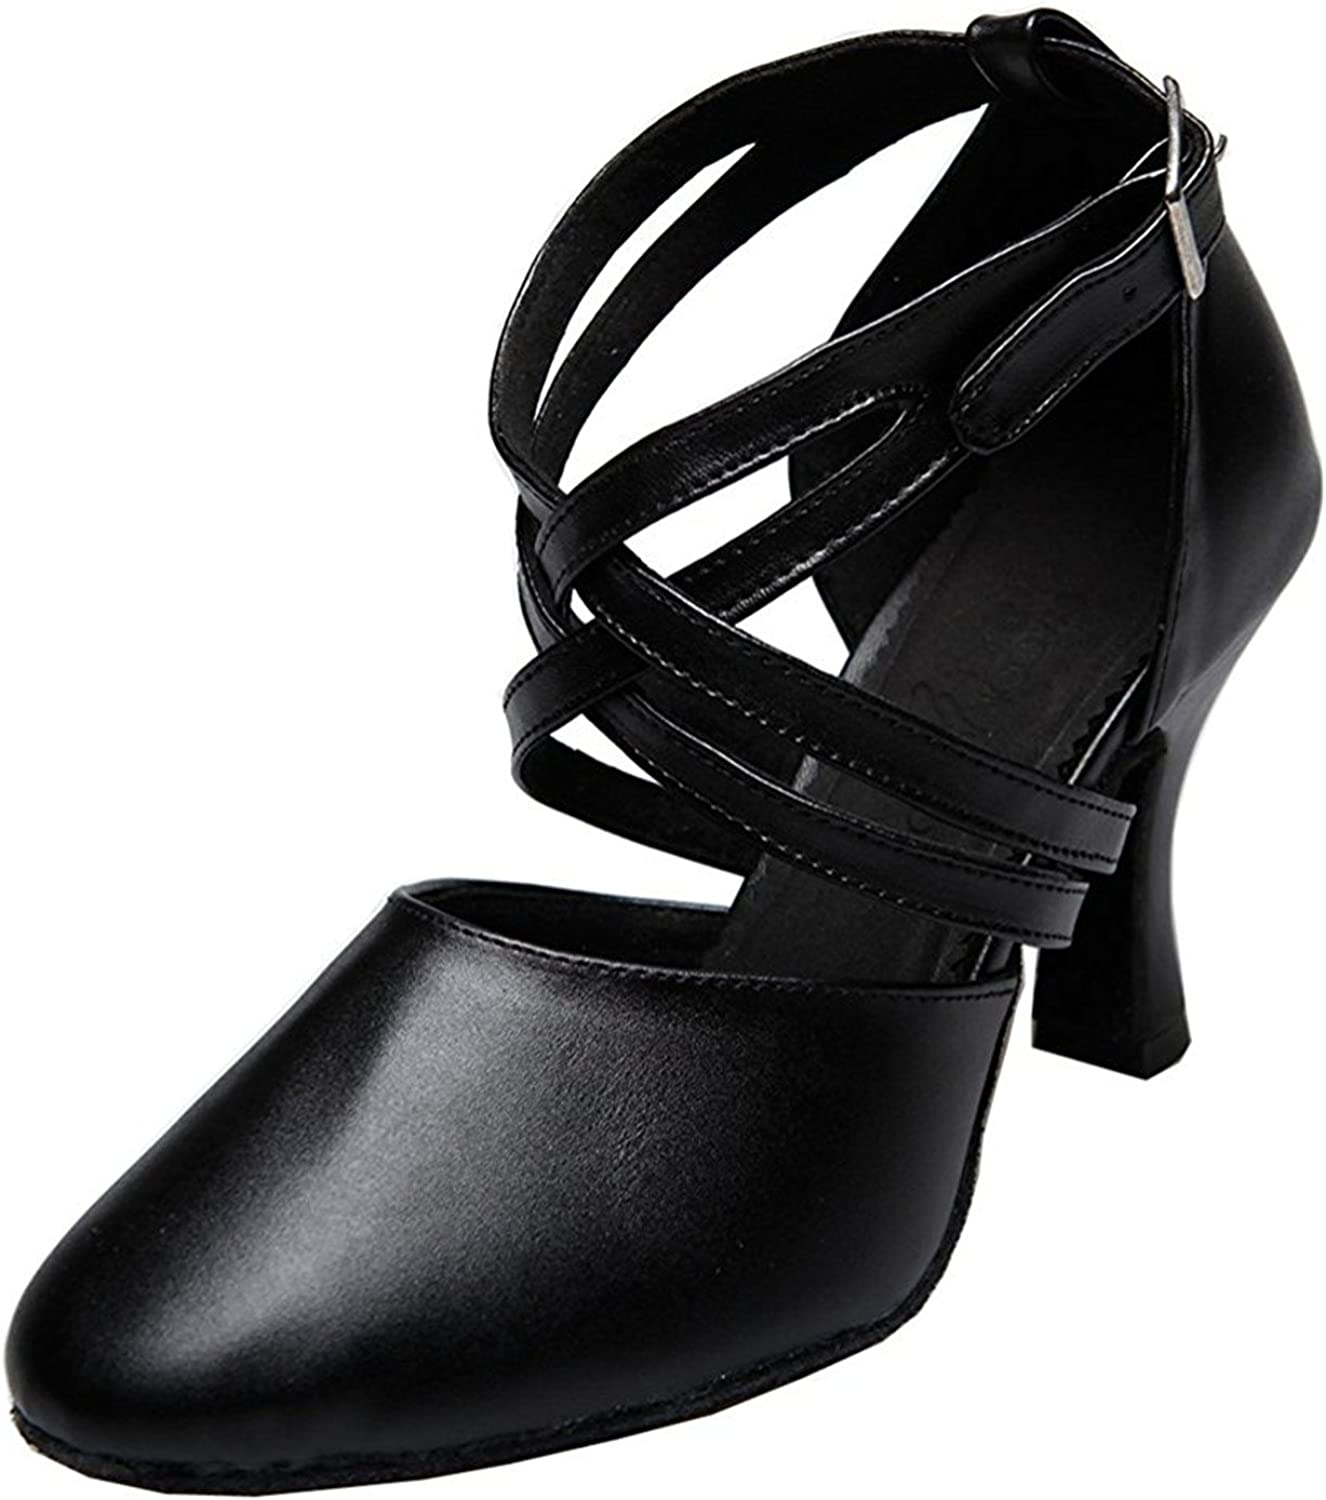 Also Easy Stylish Womens Ankle Strap Leather Salsa Tango Ballroom Latin Party Wedding Dance Pumps Unique Style